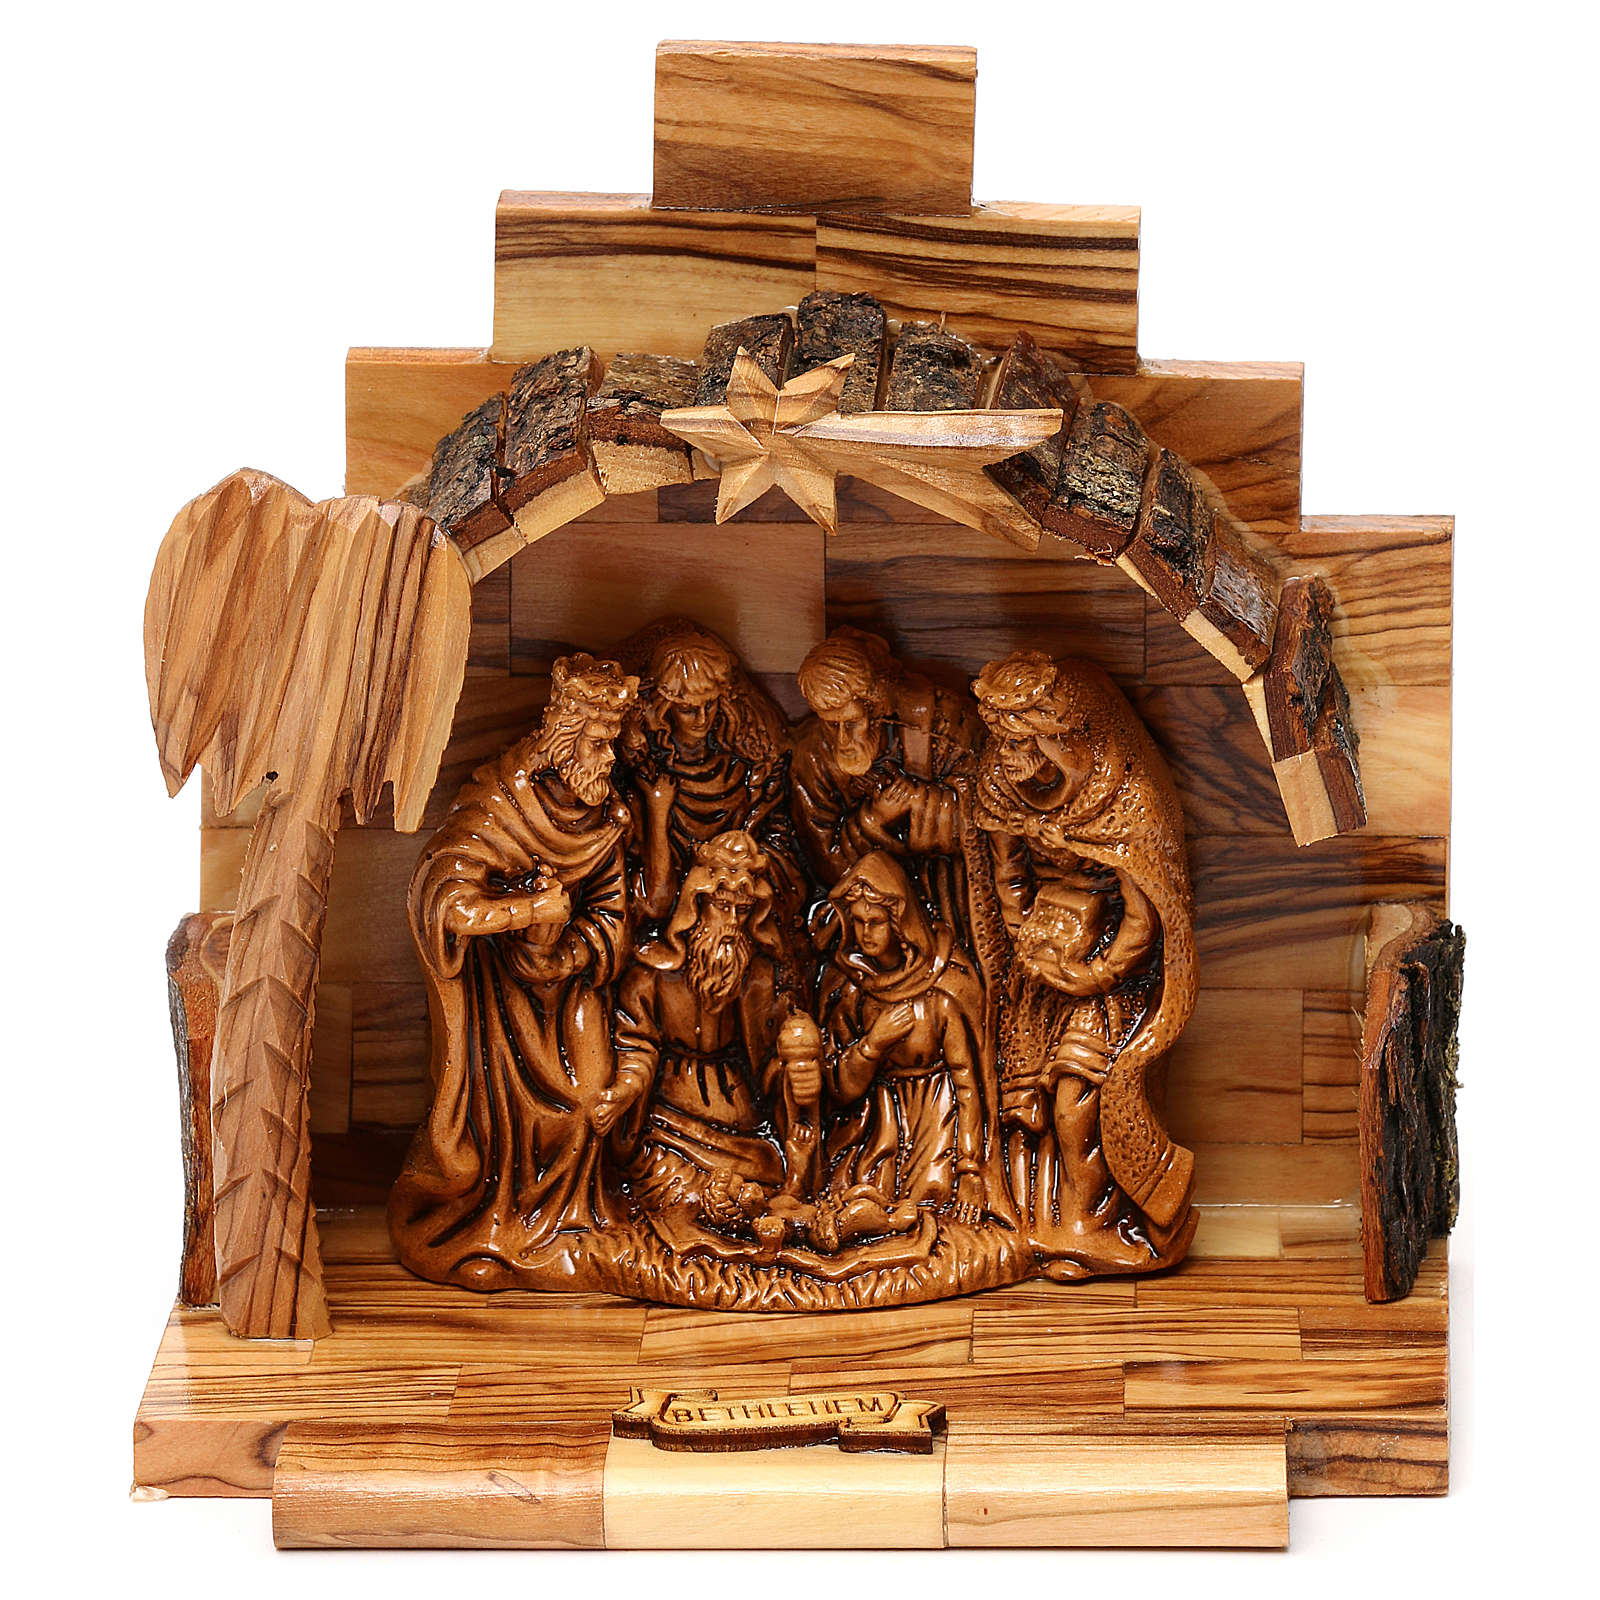 Nativity scene with cave in Bethlehem olive wood 15x15x10 cm 4